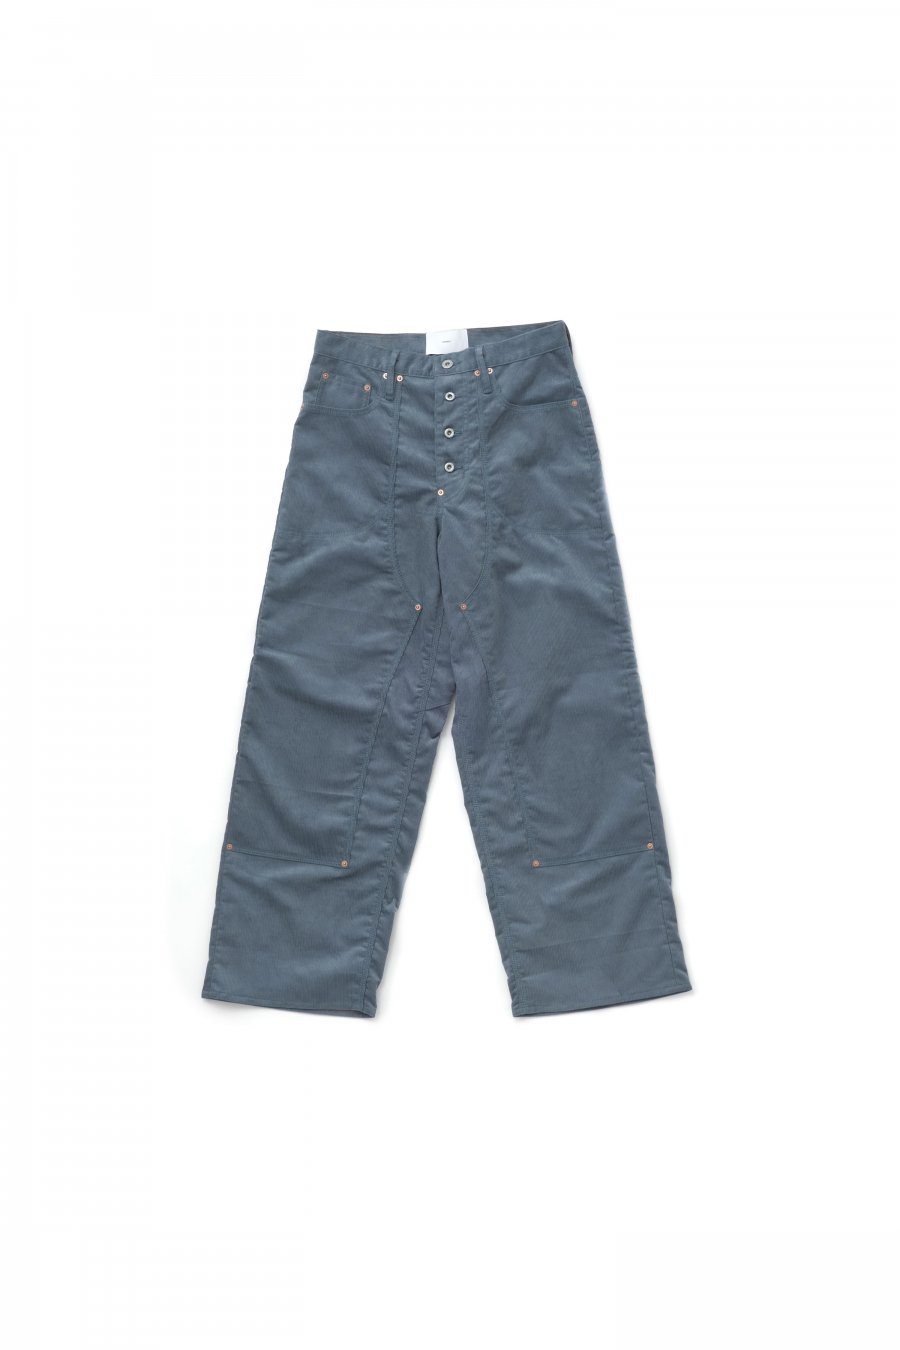 SUGARHILL  CORDUROY DOUBLE KNEE DENIM PANTS(BLUE)<img class='new_mark_img2' src='https://img.shop-pro.jp/img/new/icons15.gif' style='border:none;display:inline;margin:0px;padding:0px;width:auto;' />